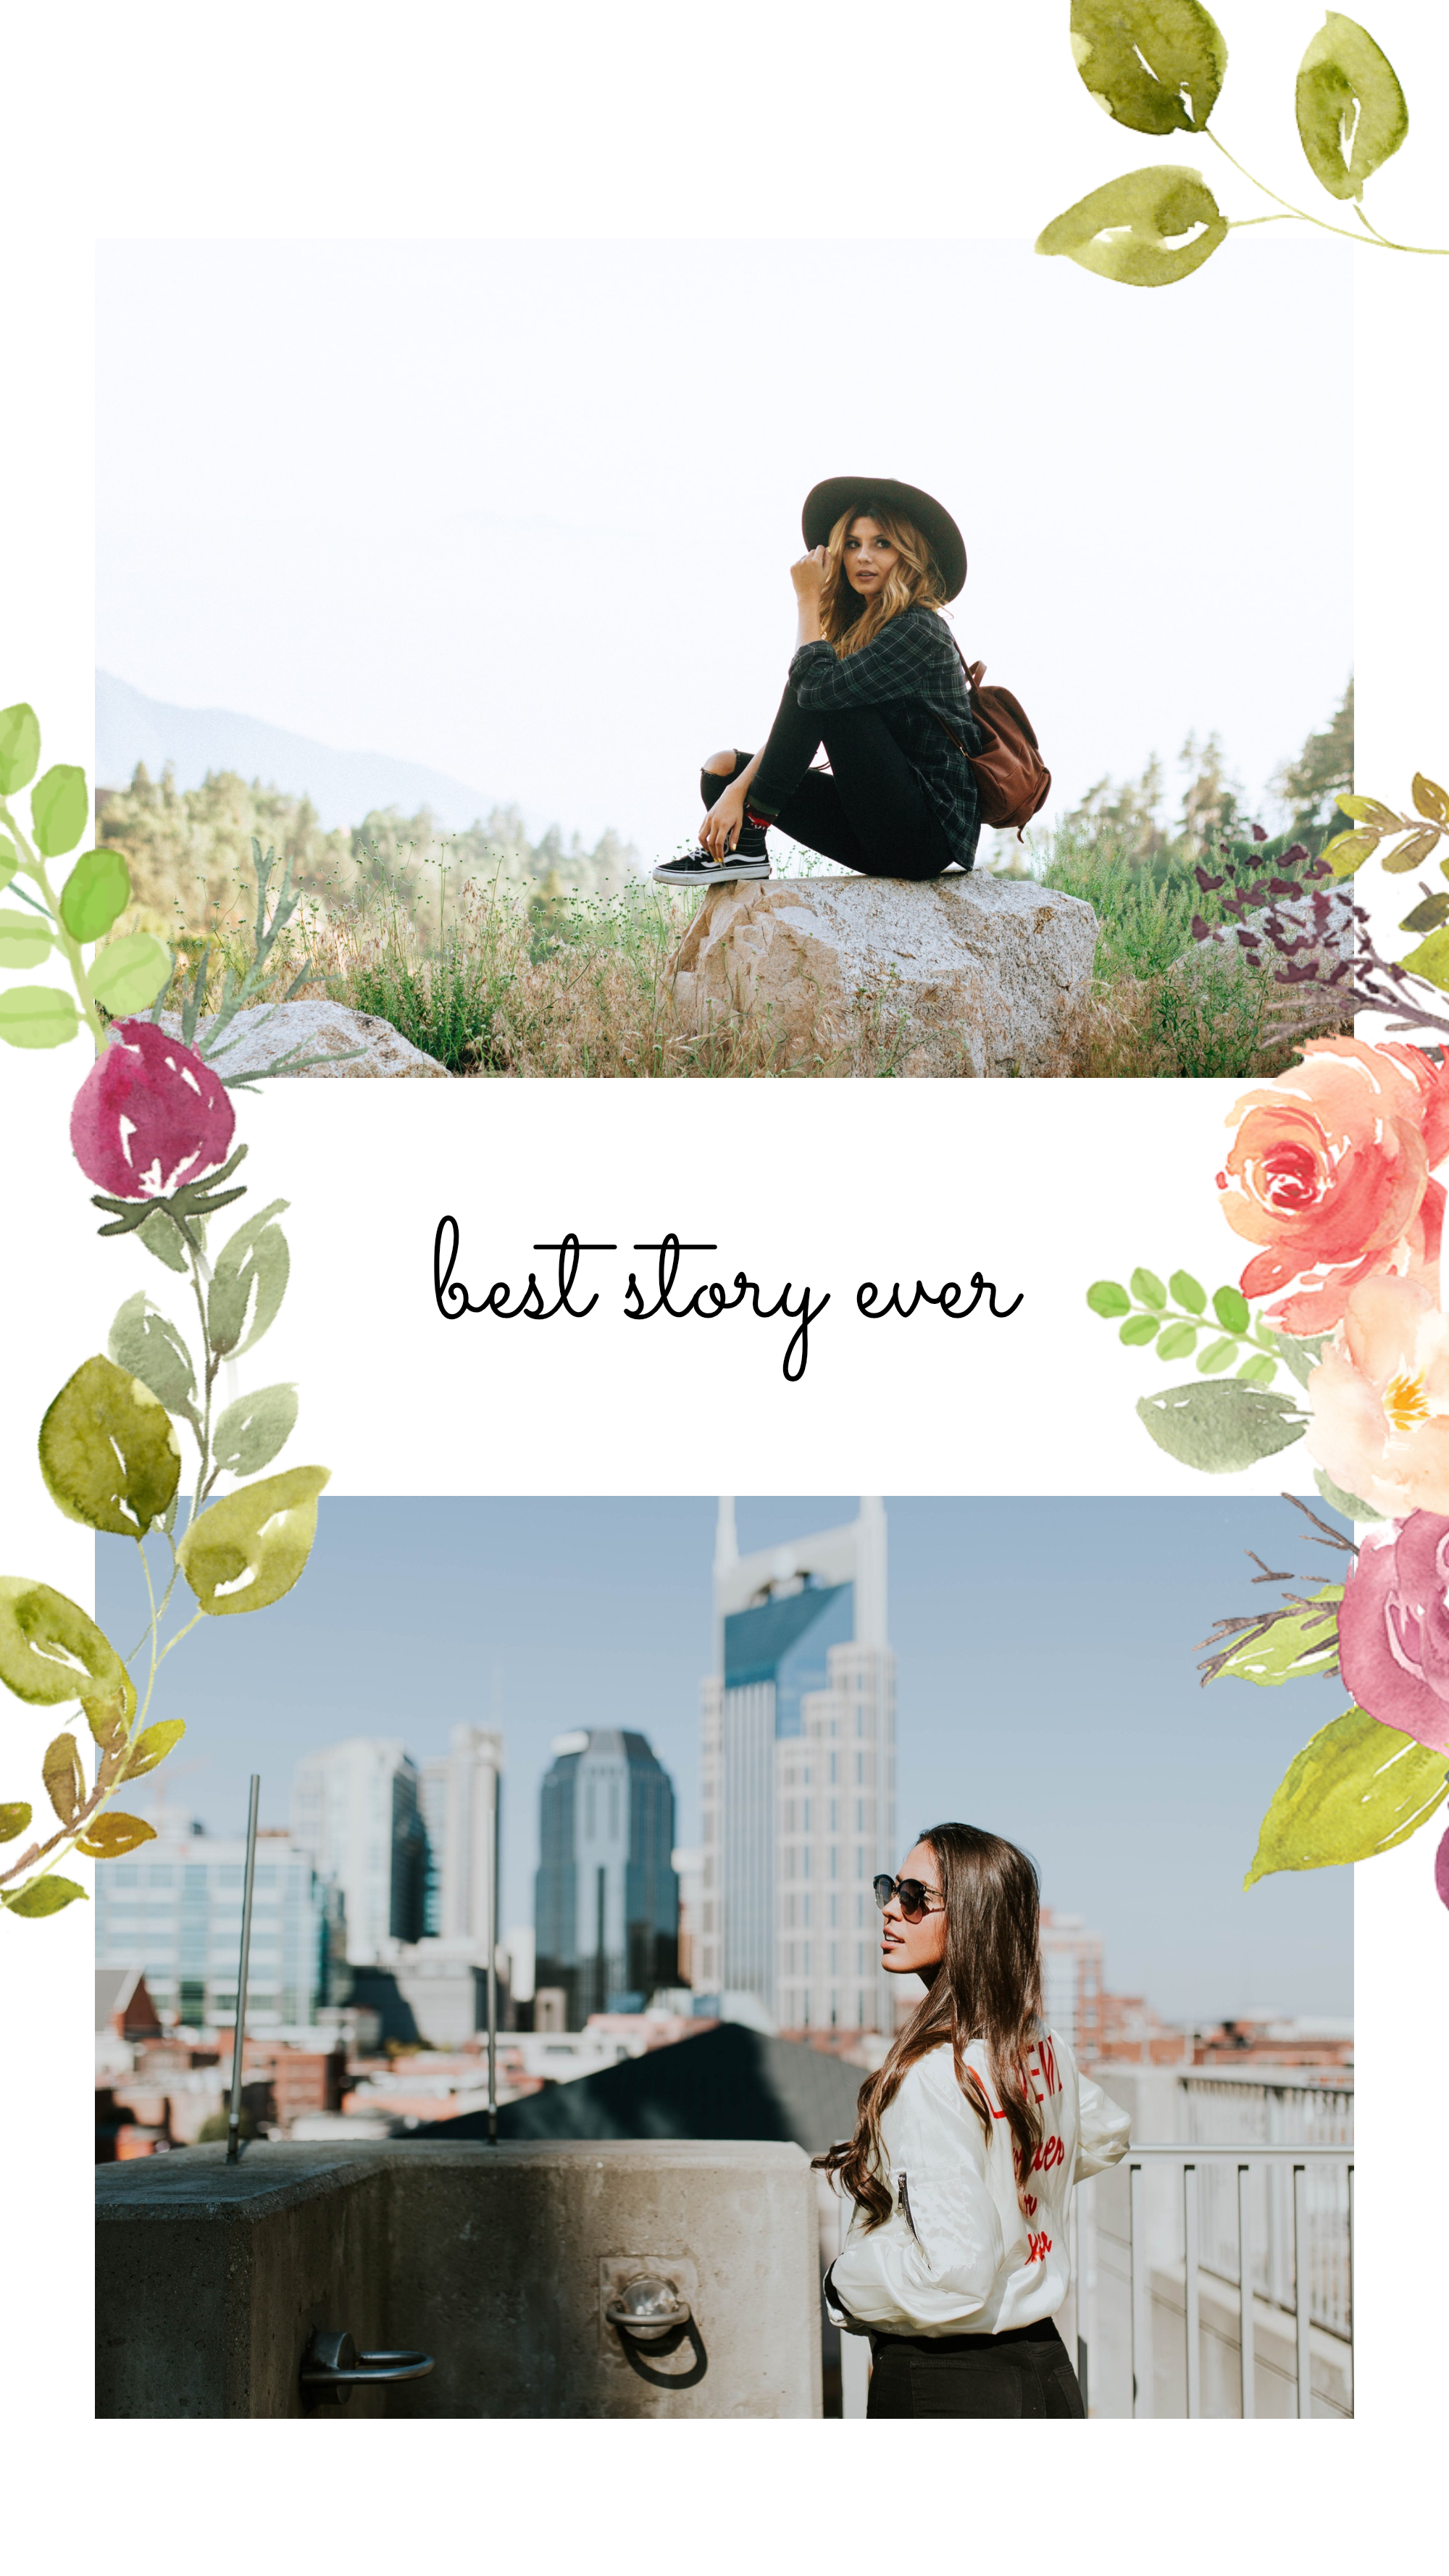 #pastelflowers collection - best story ever Instagram Story Template